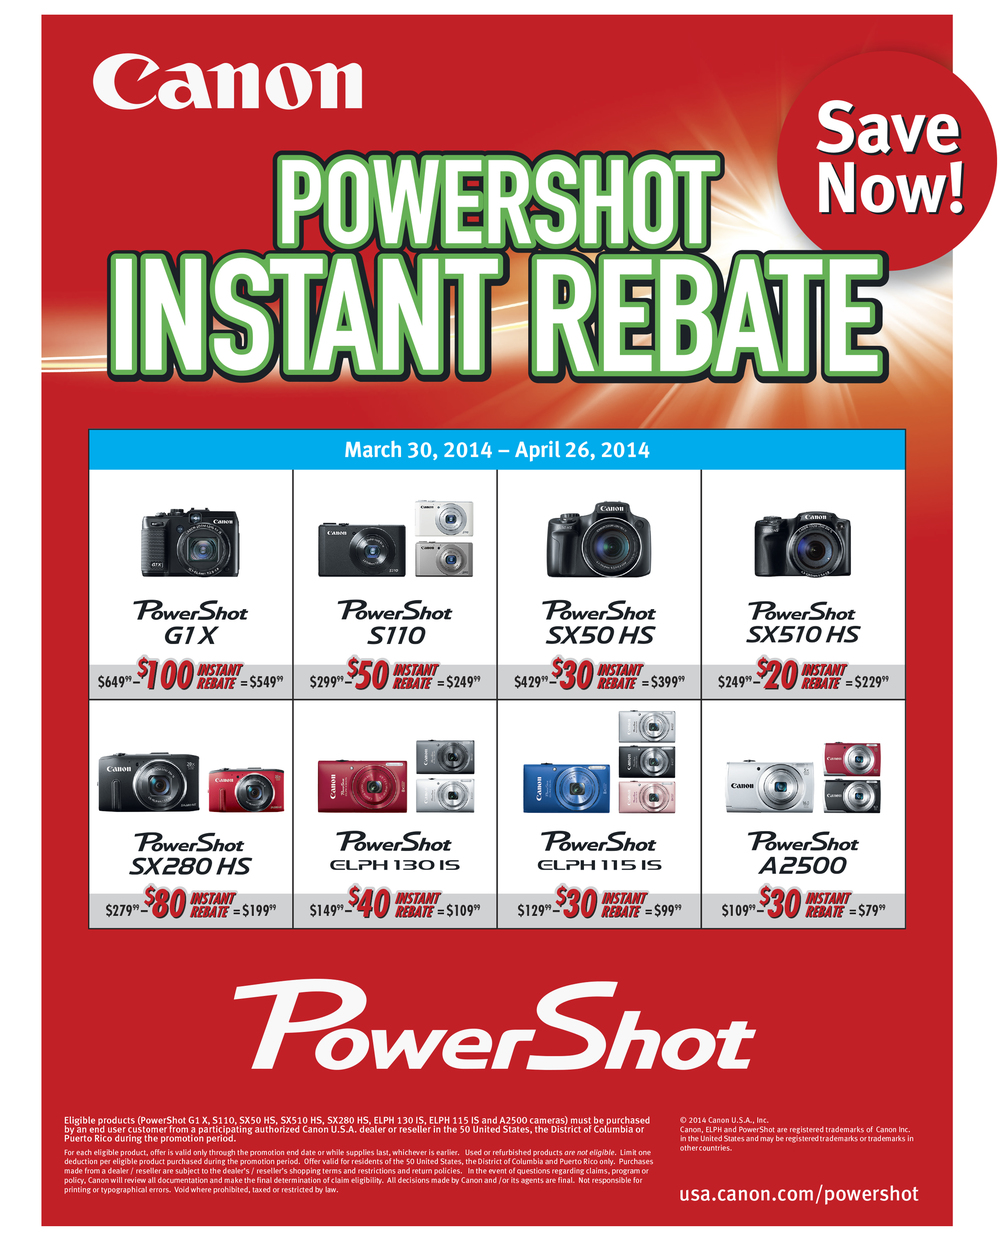 PowerShot_selected_cameras_Instant_Rebate_Ad_Slick_3_30_14_4_26_14-1.jpg